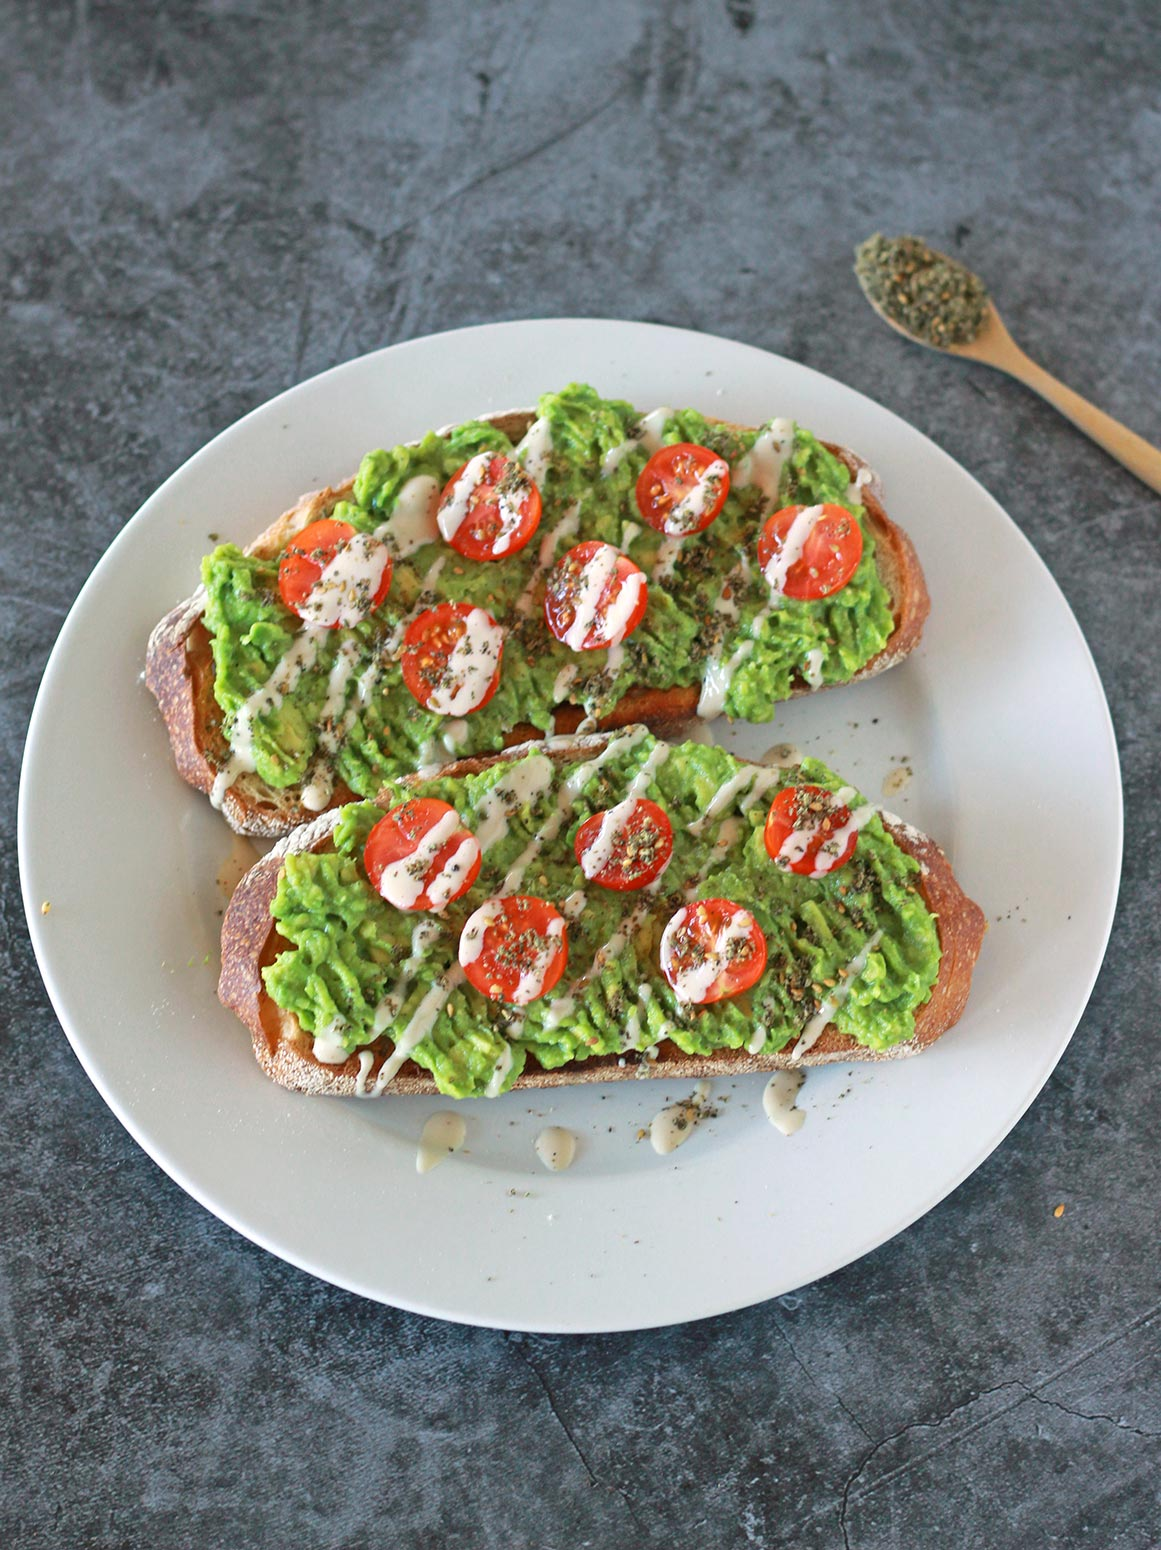 zaatar avocado toast avo vegan tahini tomato easy recipe plant based food blog arabic mediterranean middle eastern zenandzaatar